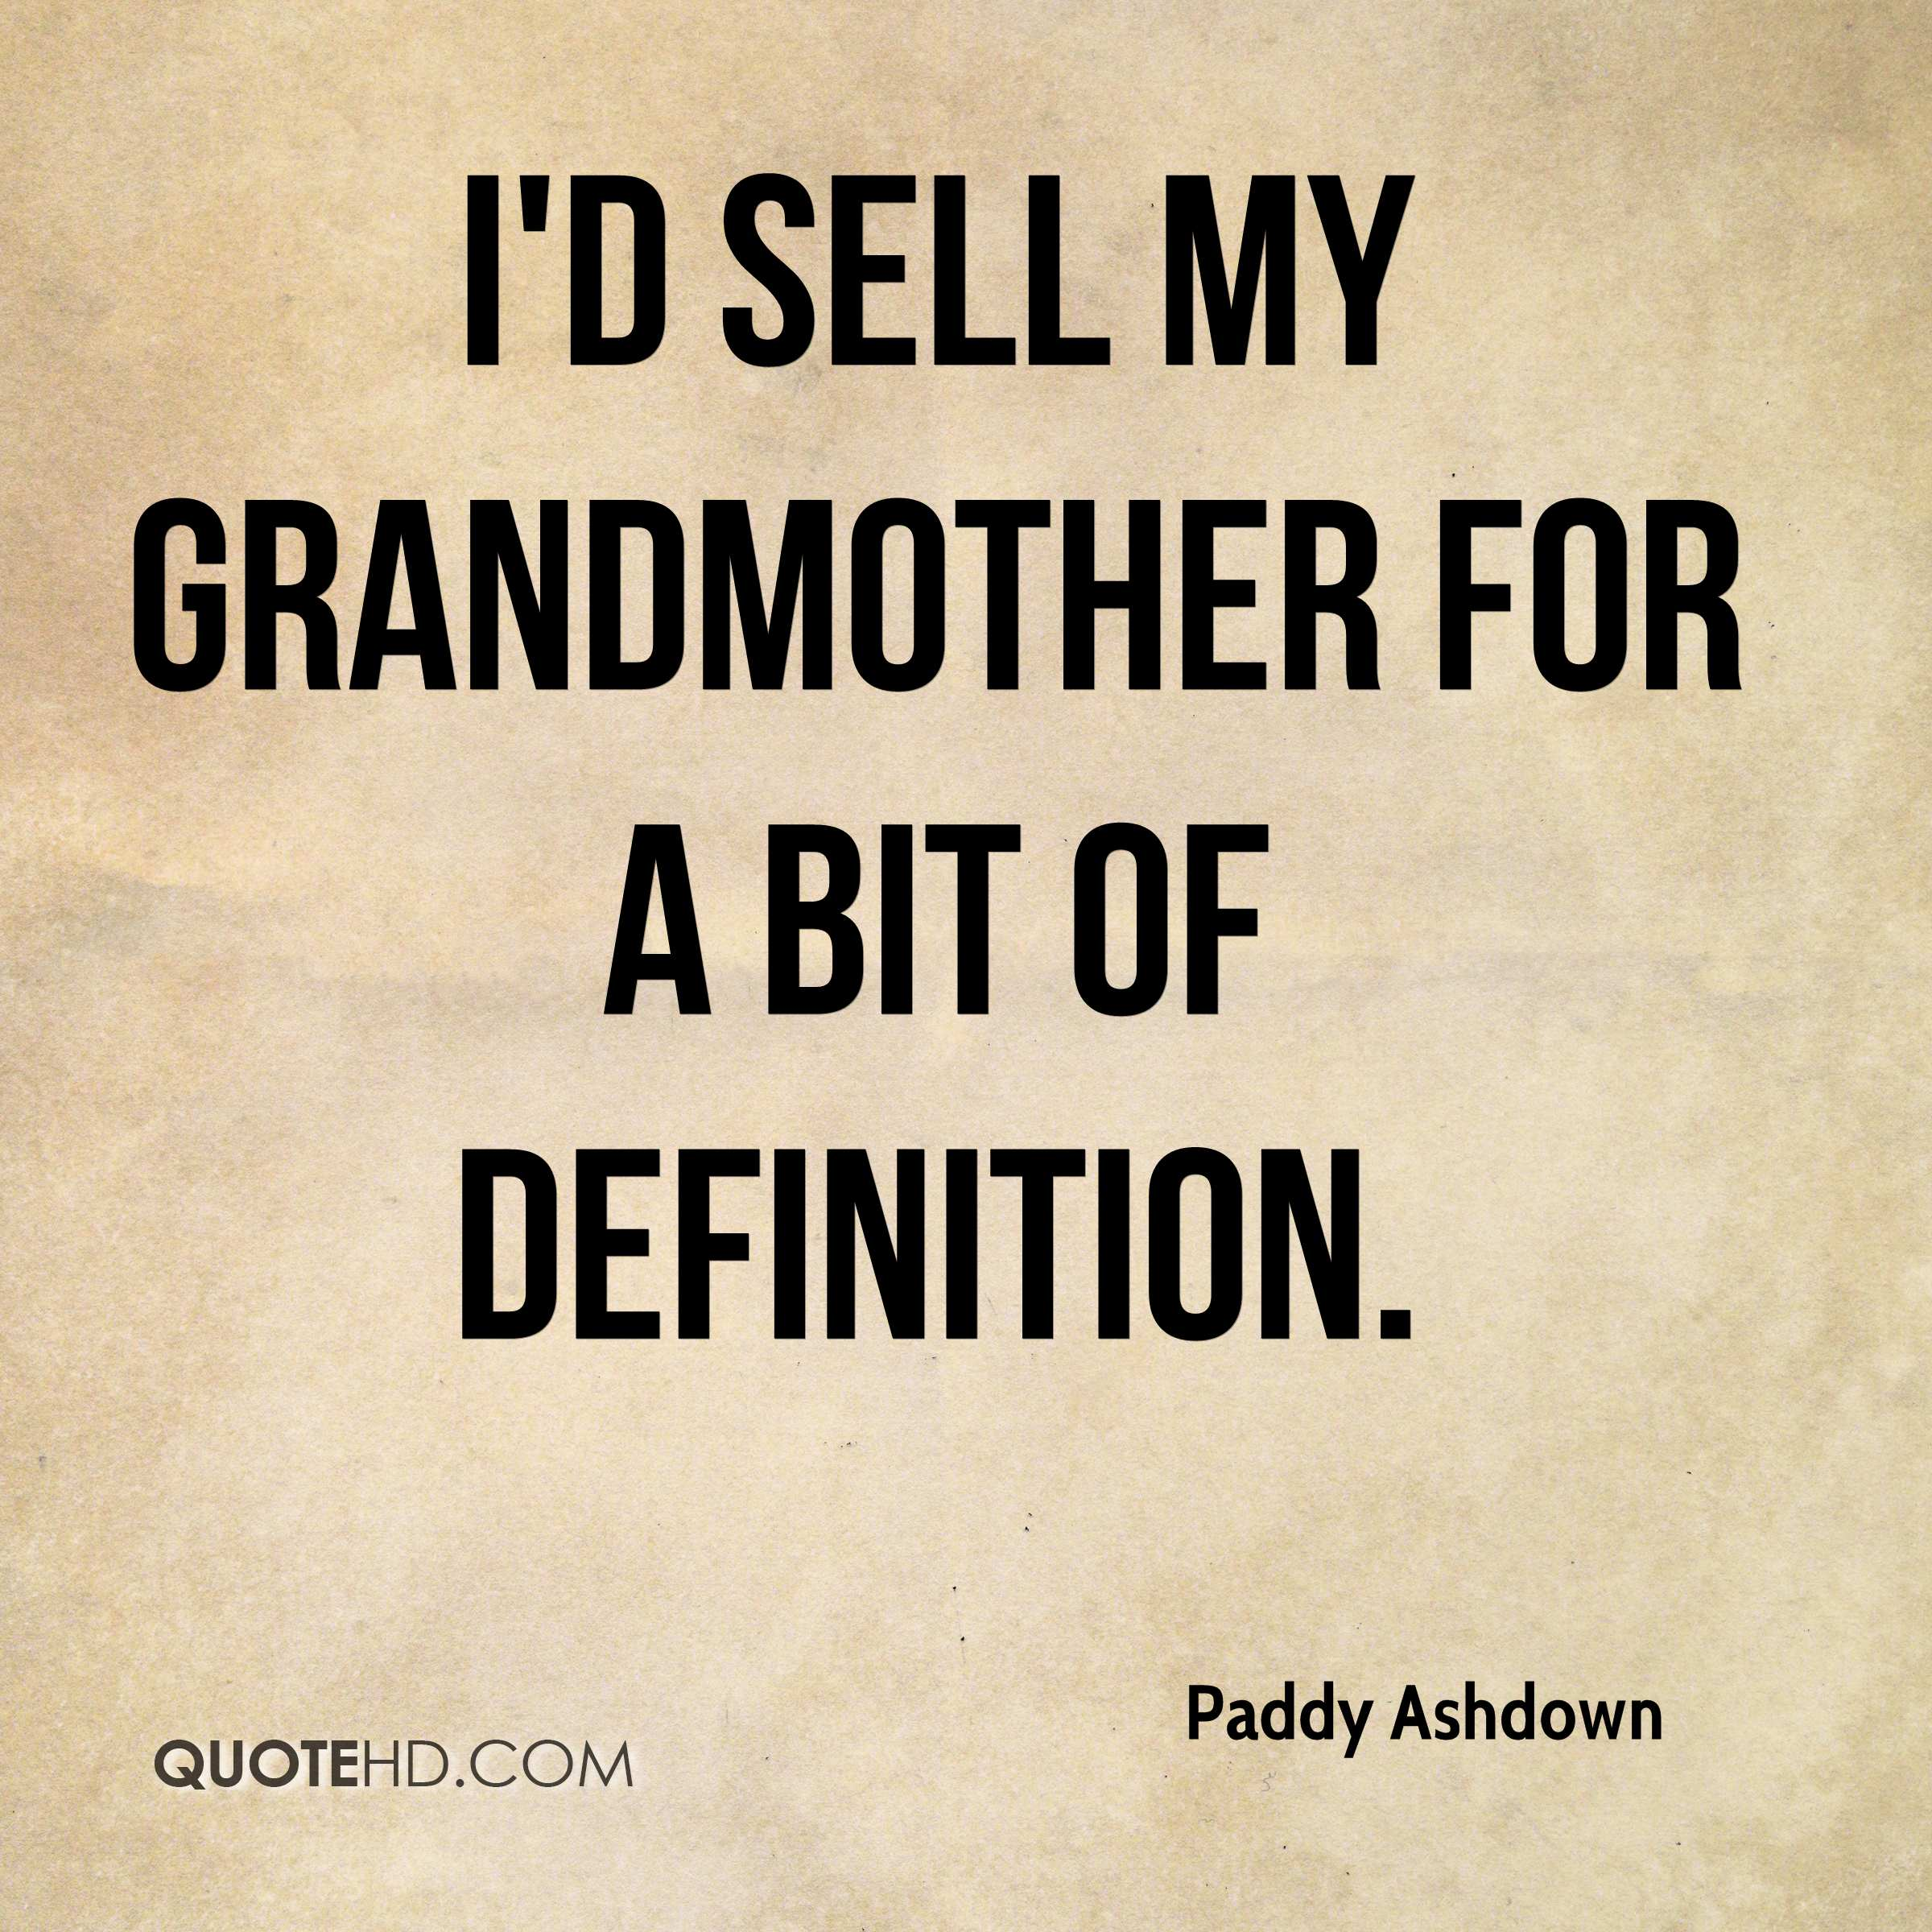 I'd sell my grandmother for a bit of definition.